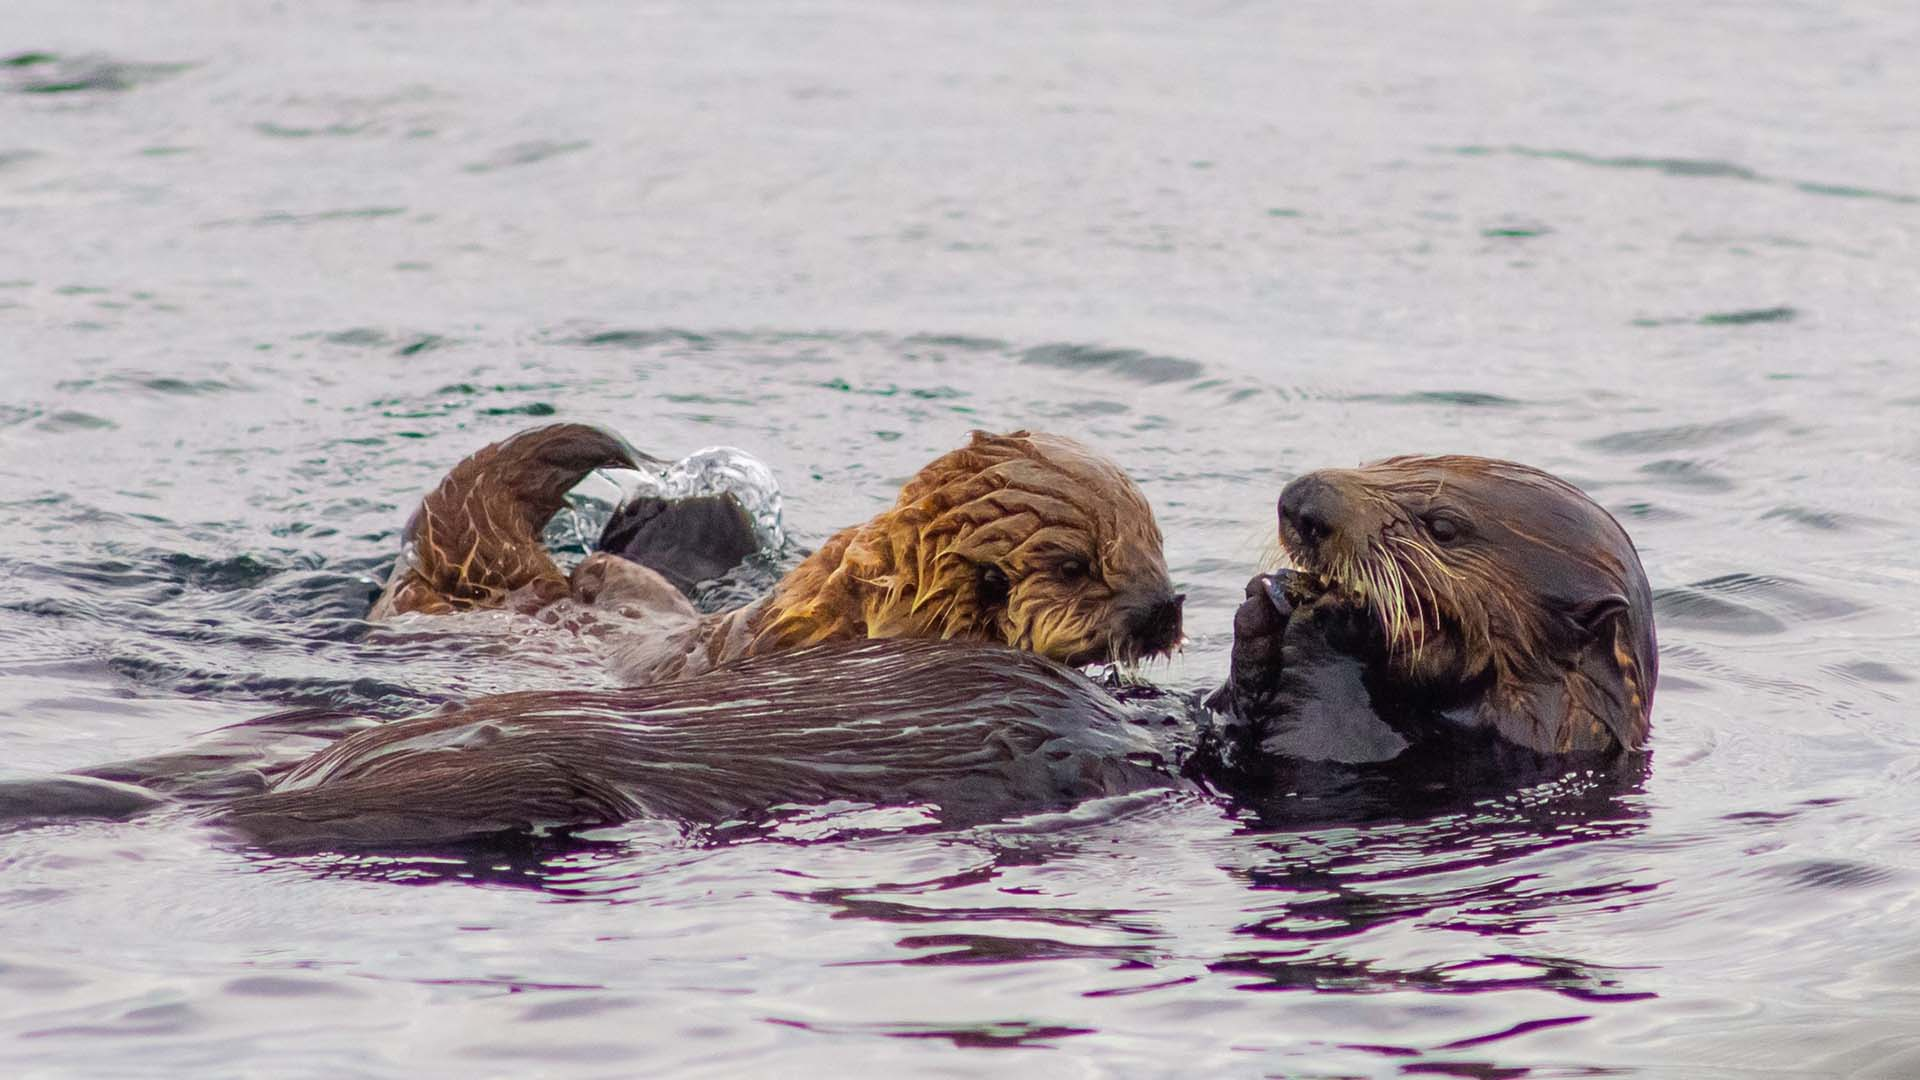 sea otter viewing tours - mother and pup